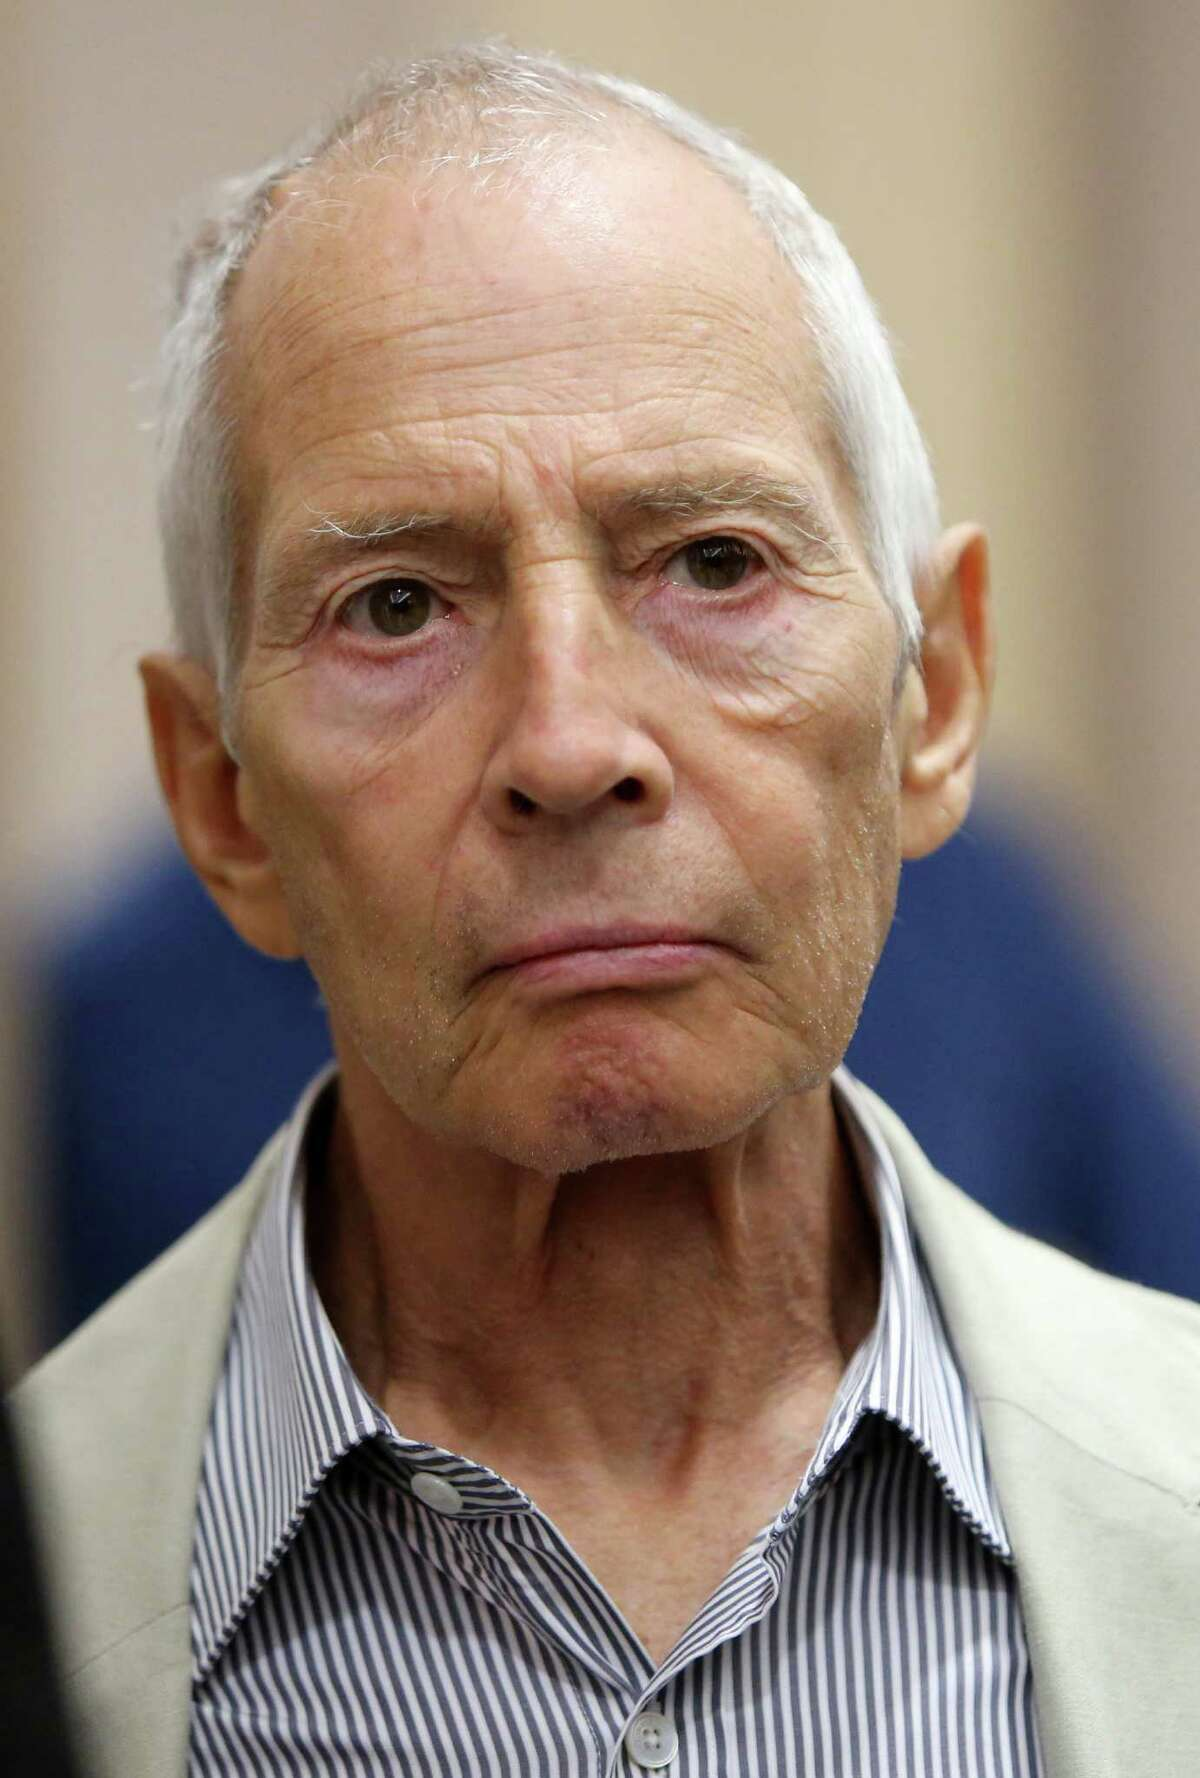 Robert Durst walks out of court at the Harris County Criminal Justice Center on Friday, Aug. 15, 2014, in Houston, TX. The complex and bloody trail of Robert Durst seemed to come to an end Sunday with the apparent off-camera admission on the HBO true-crime show